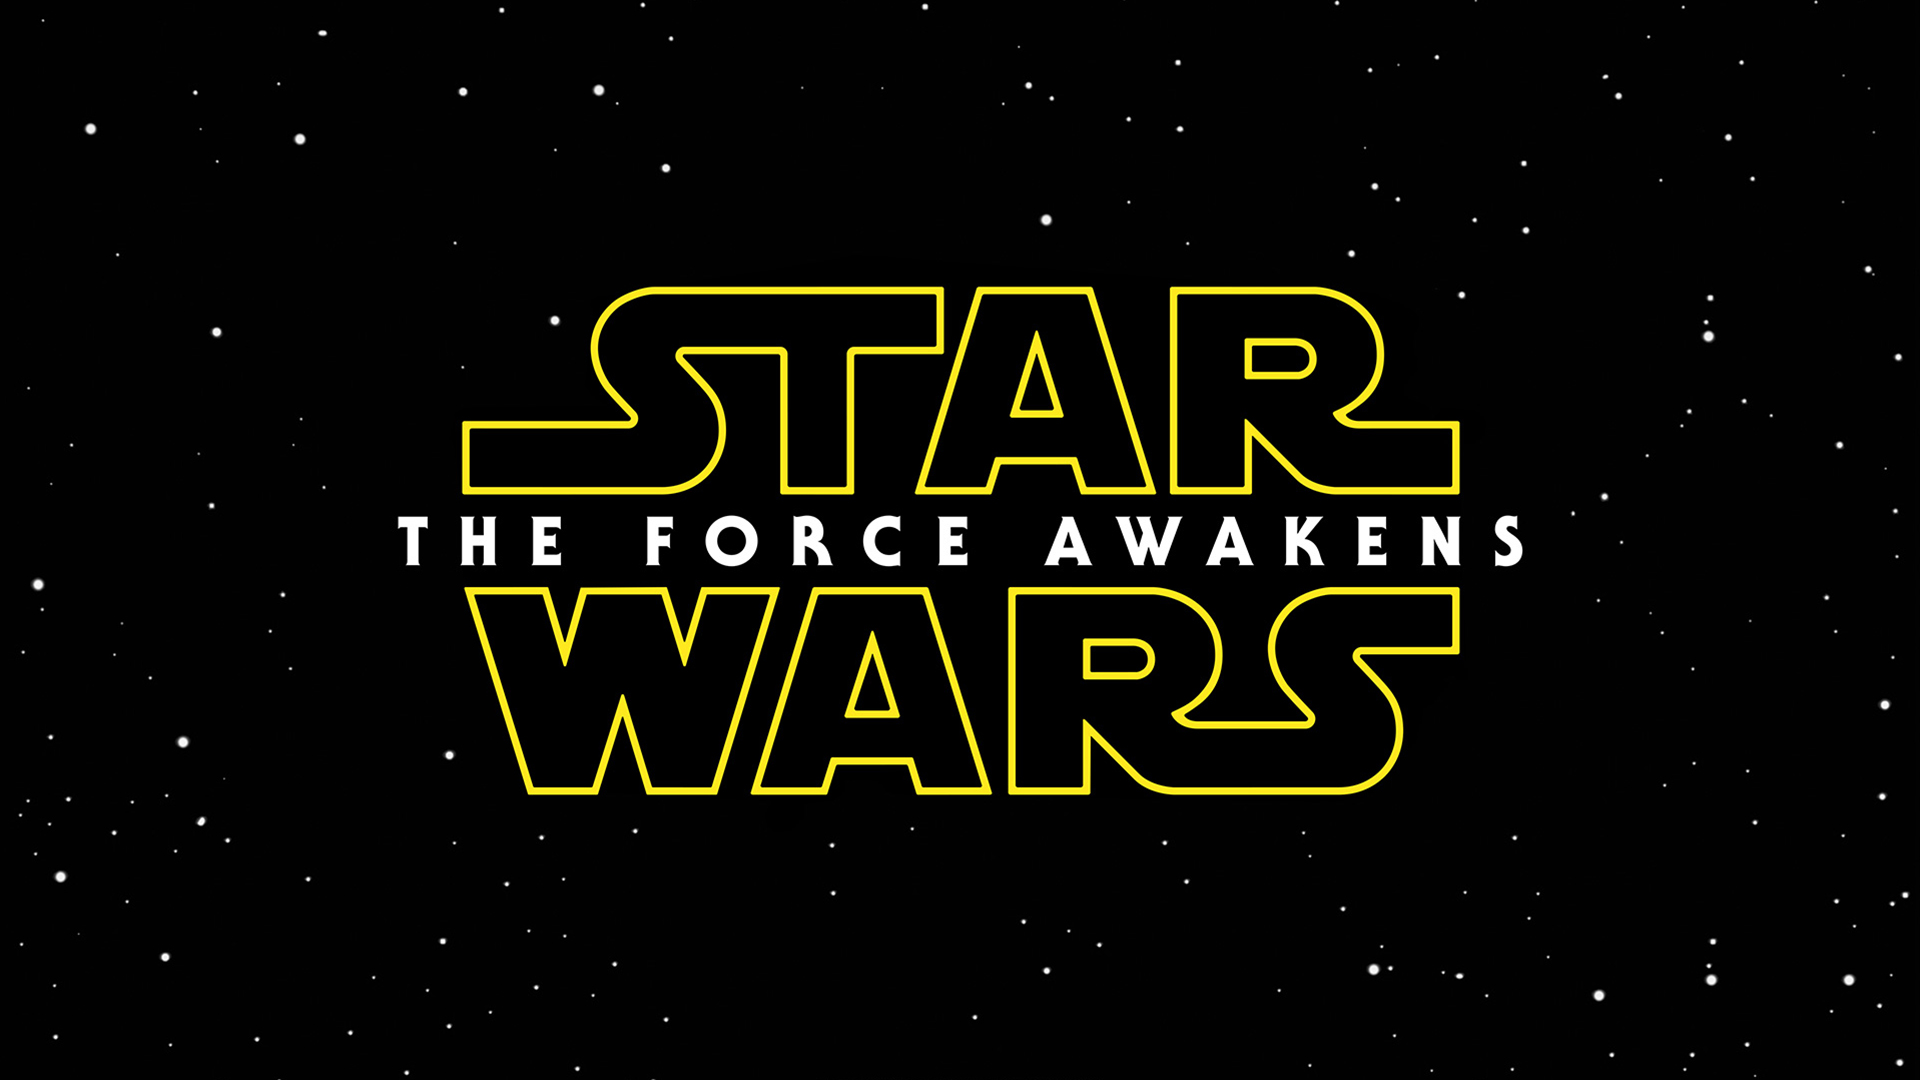 star wars: the force awakens (2015) (hd wallpapers) | volganga